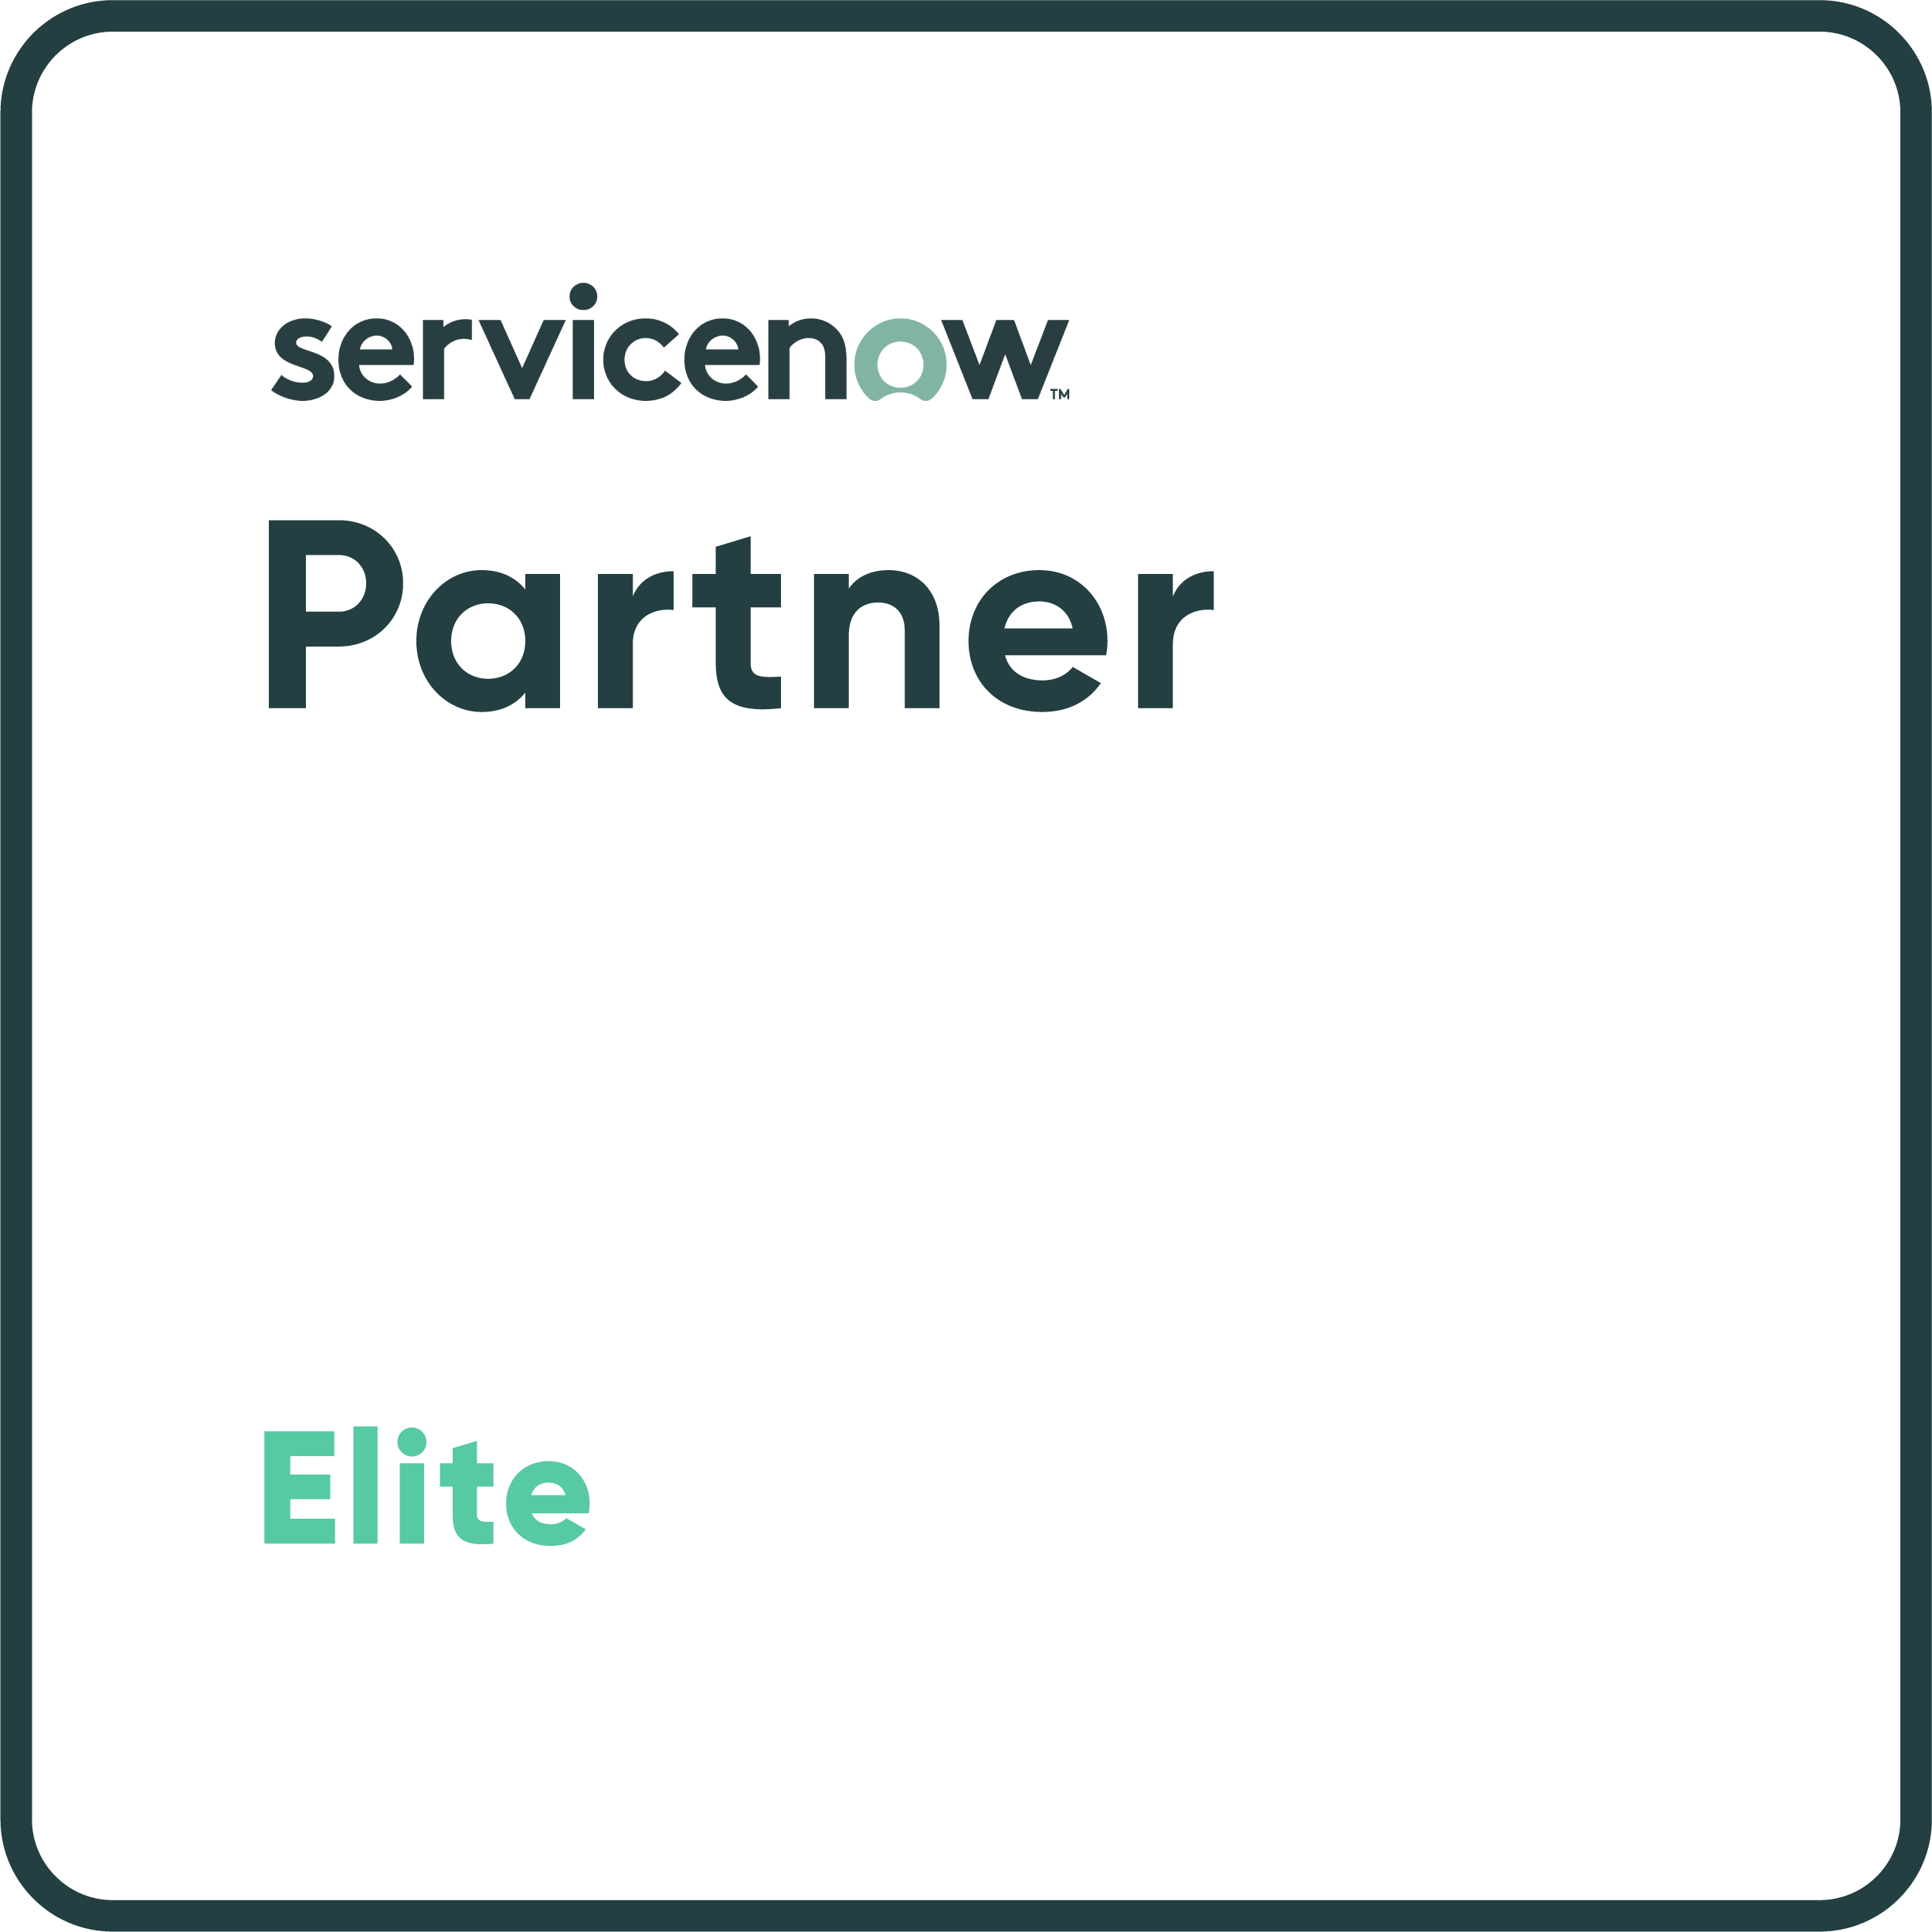 ServiceNow Elite Partner Badge